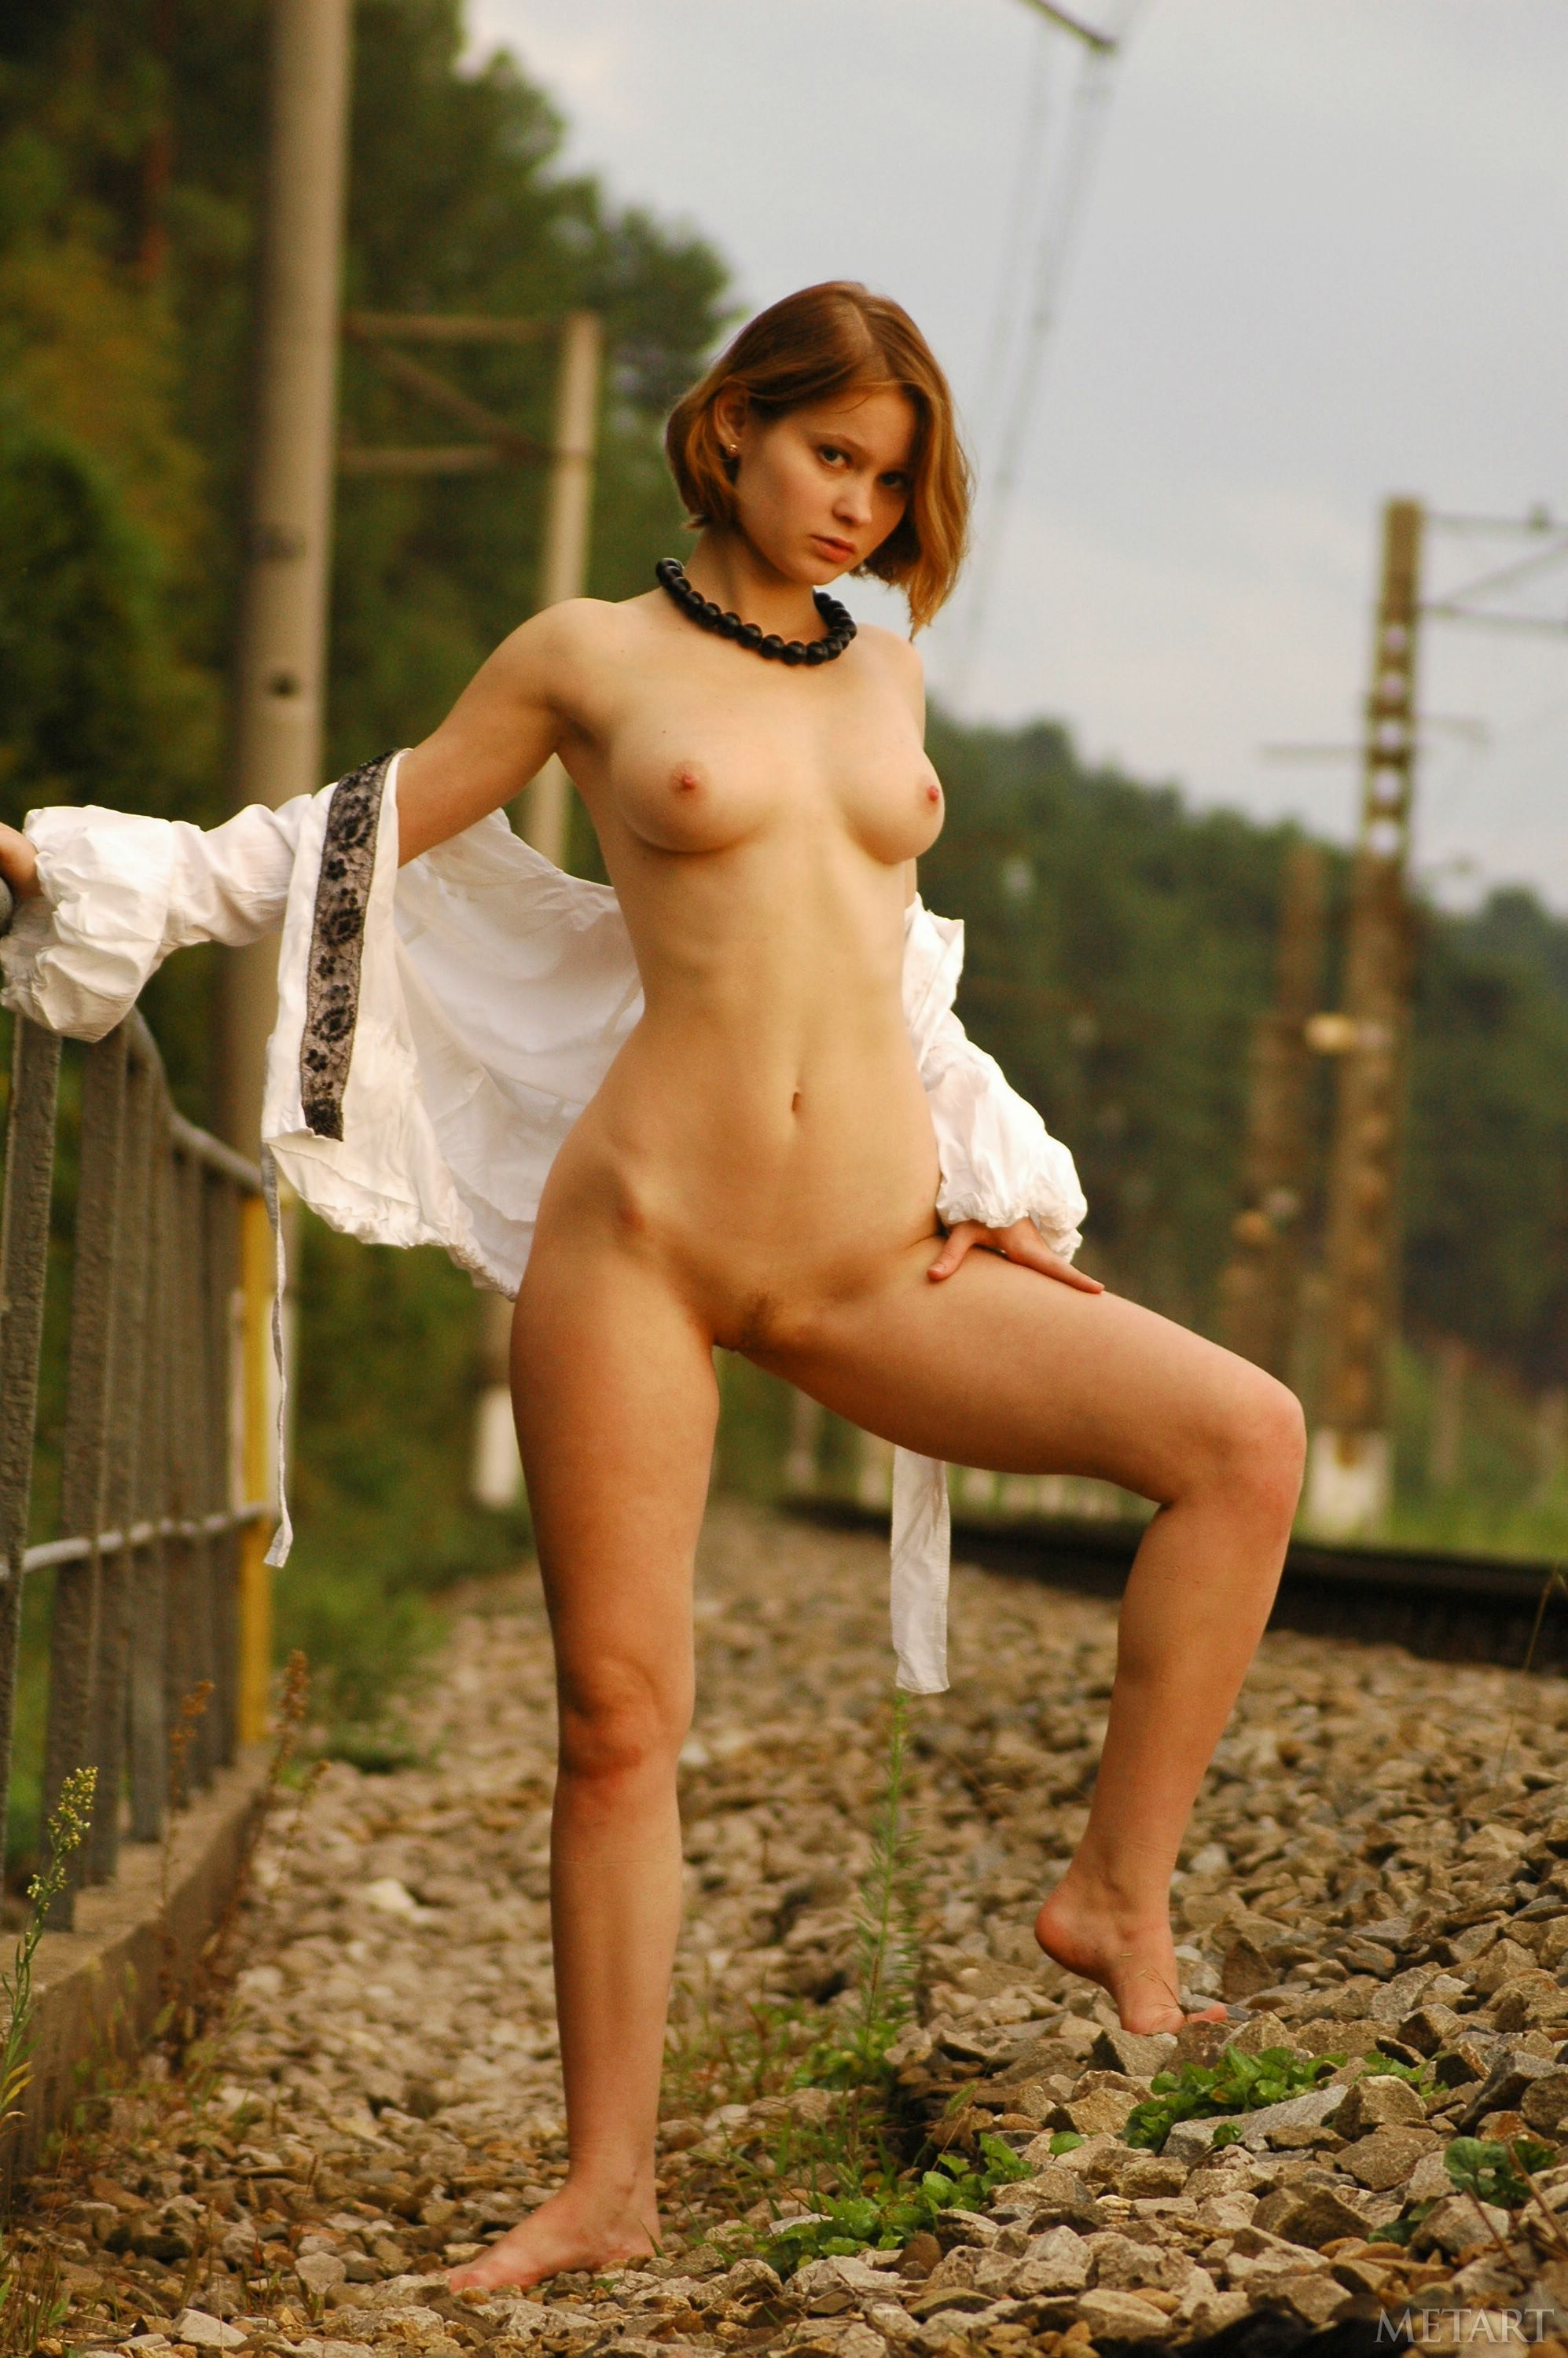 Annette lober nude pictures and pics